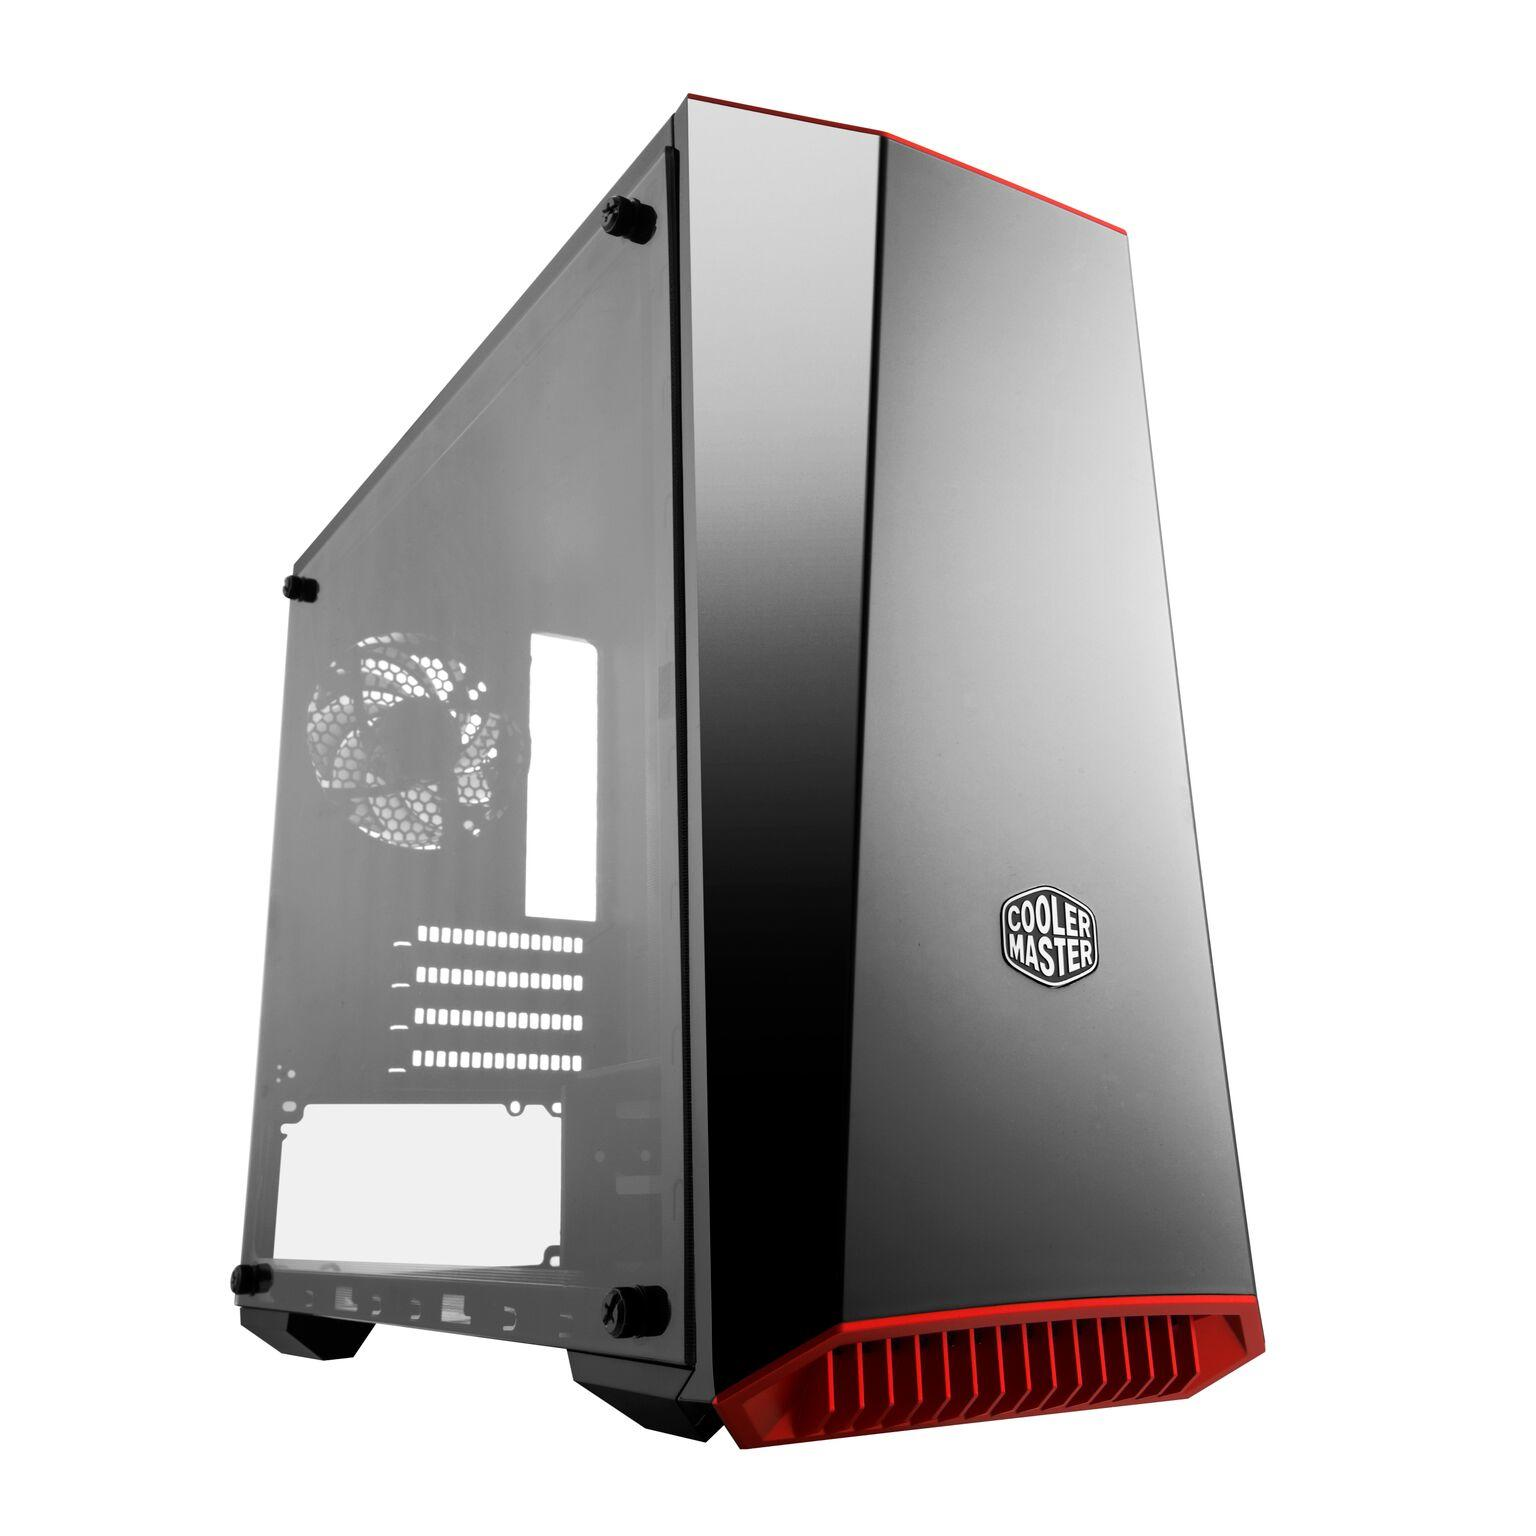 Best Value 8th Gen Intel Gaming PC